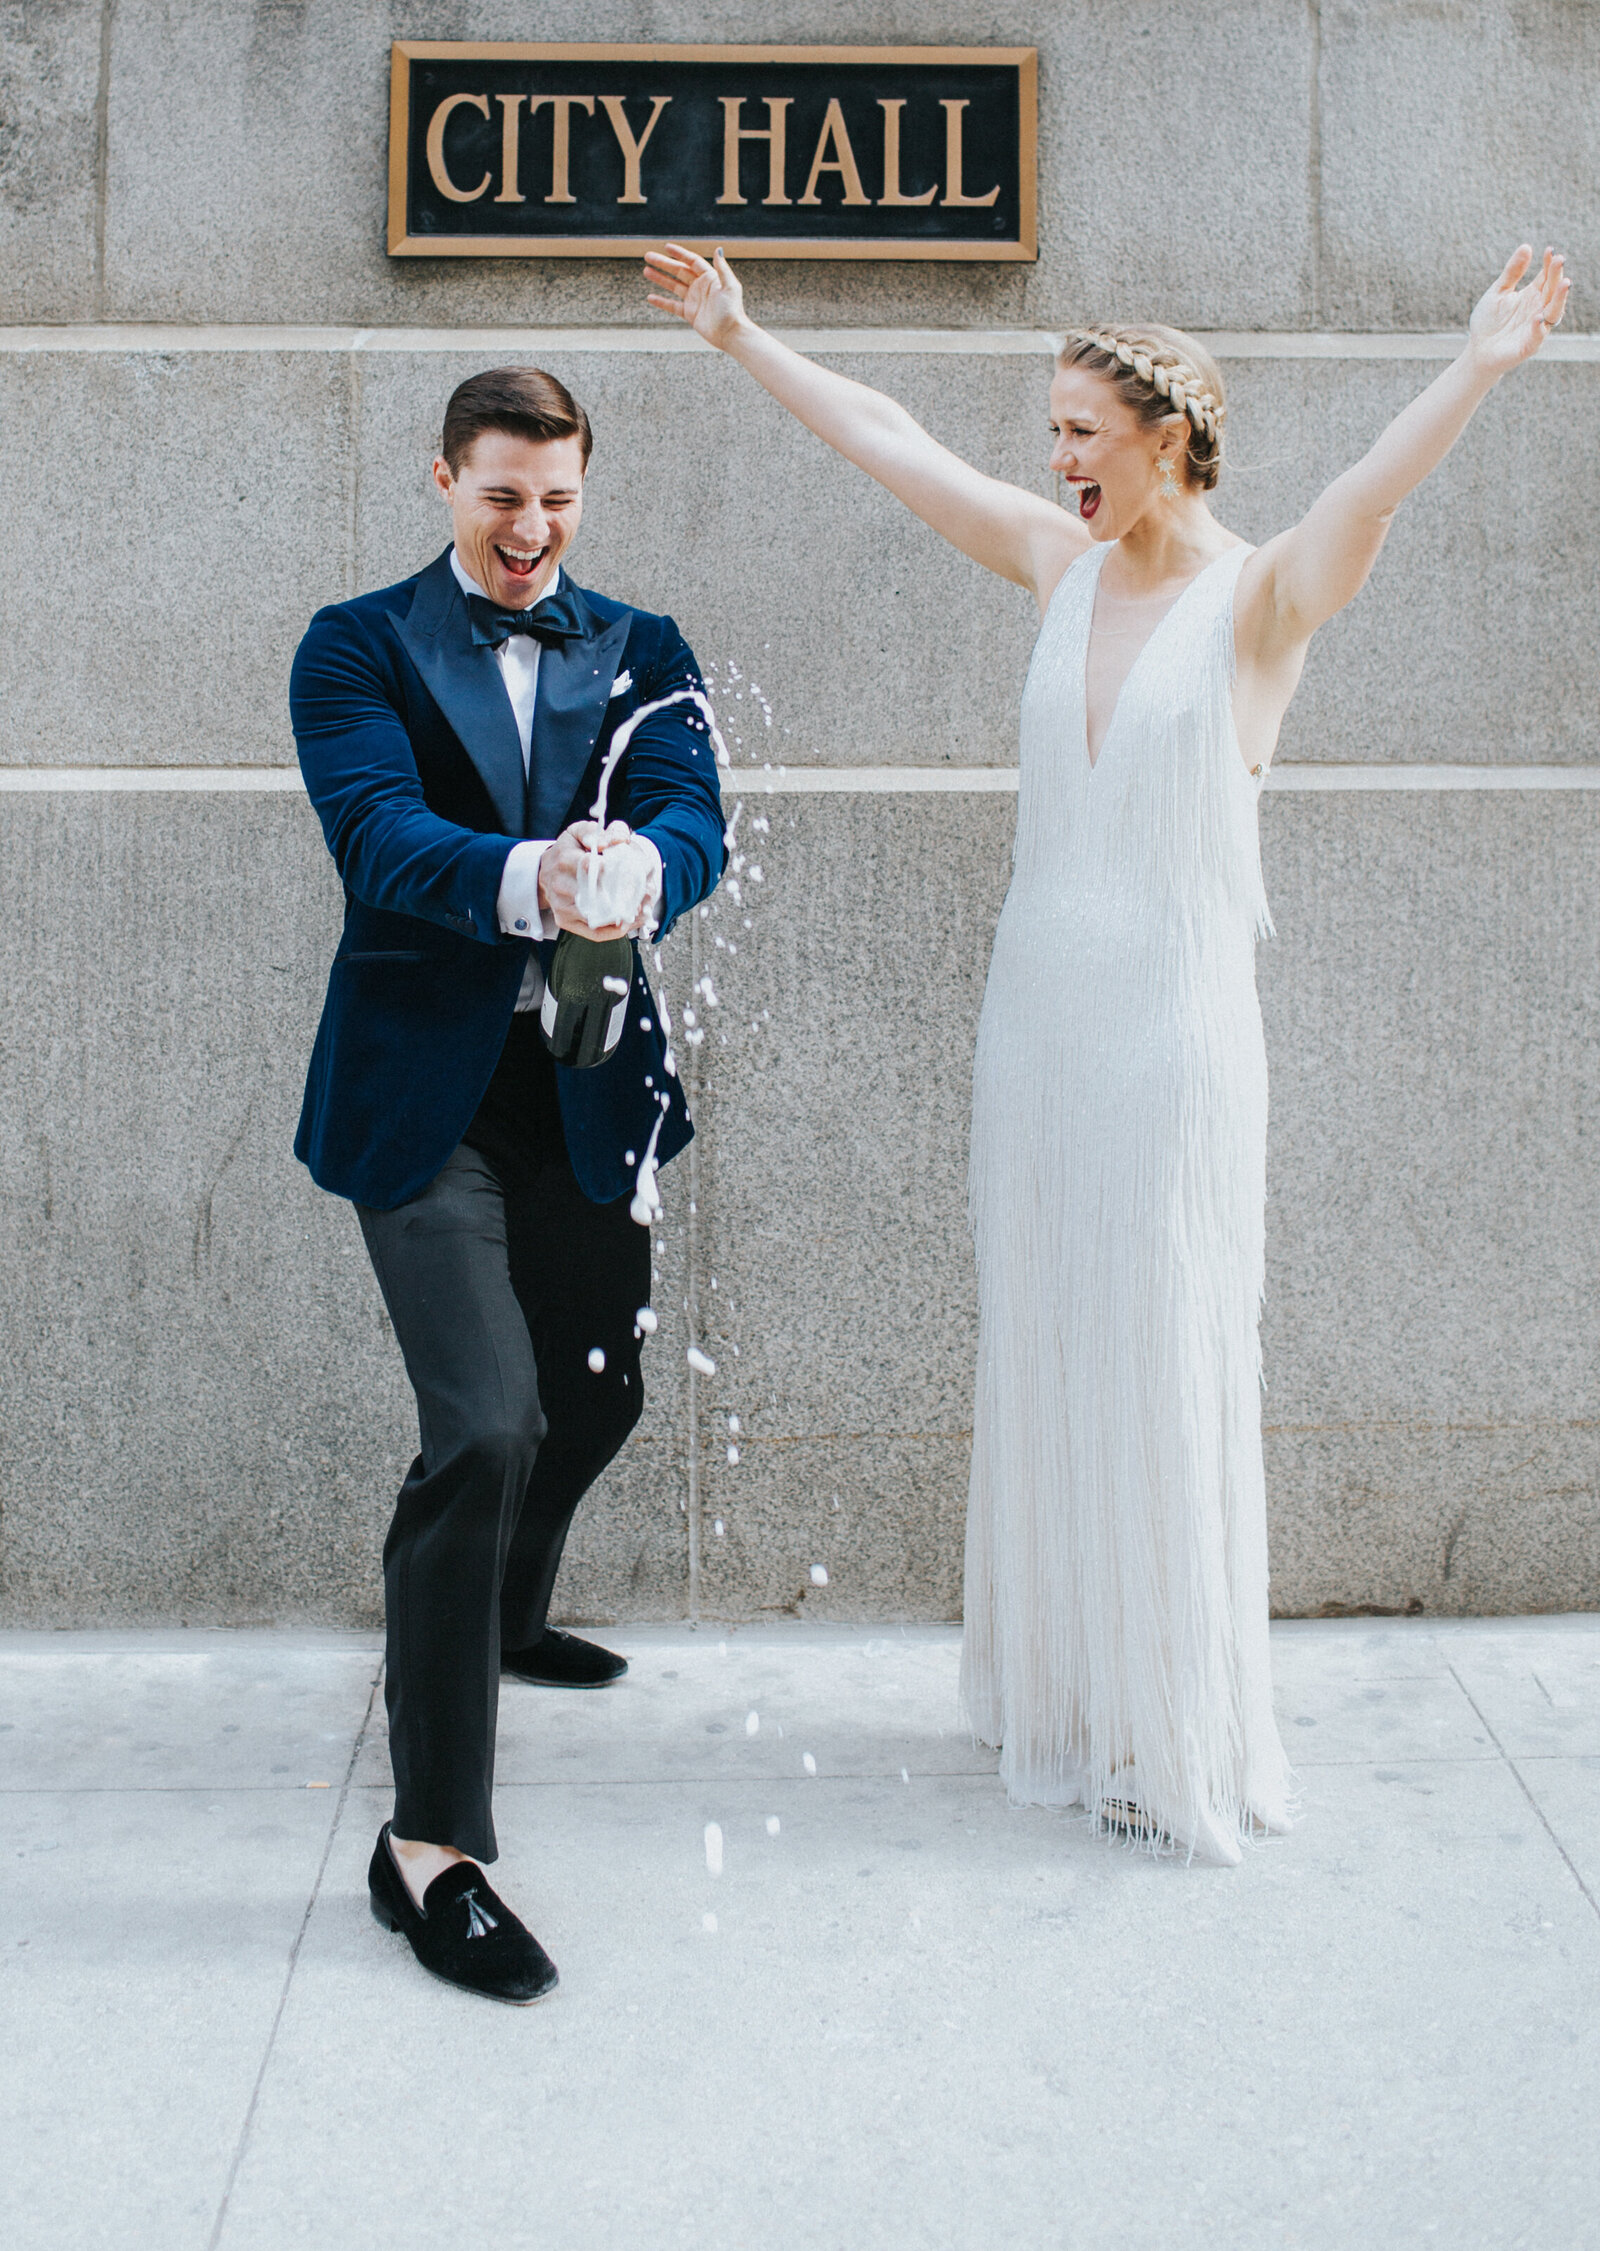 ChicagoElopement-74